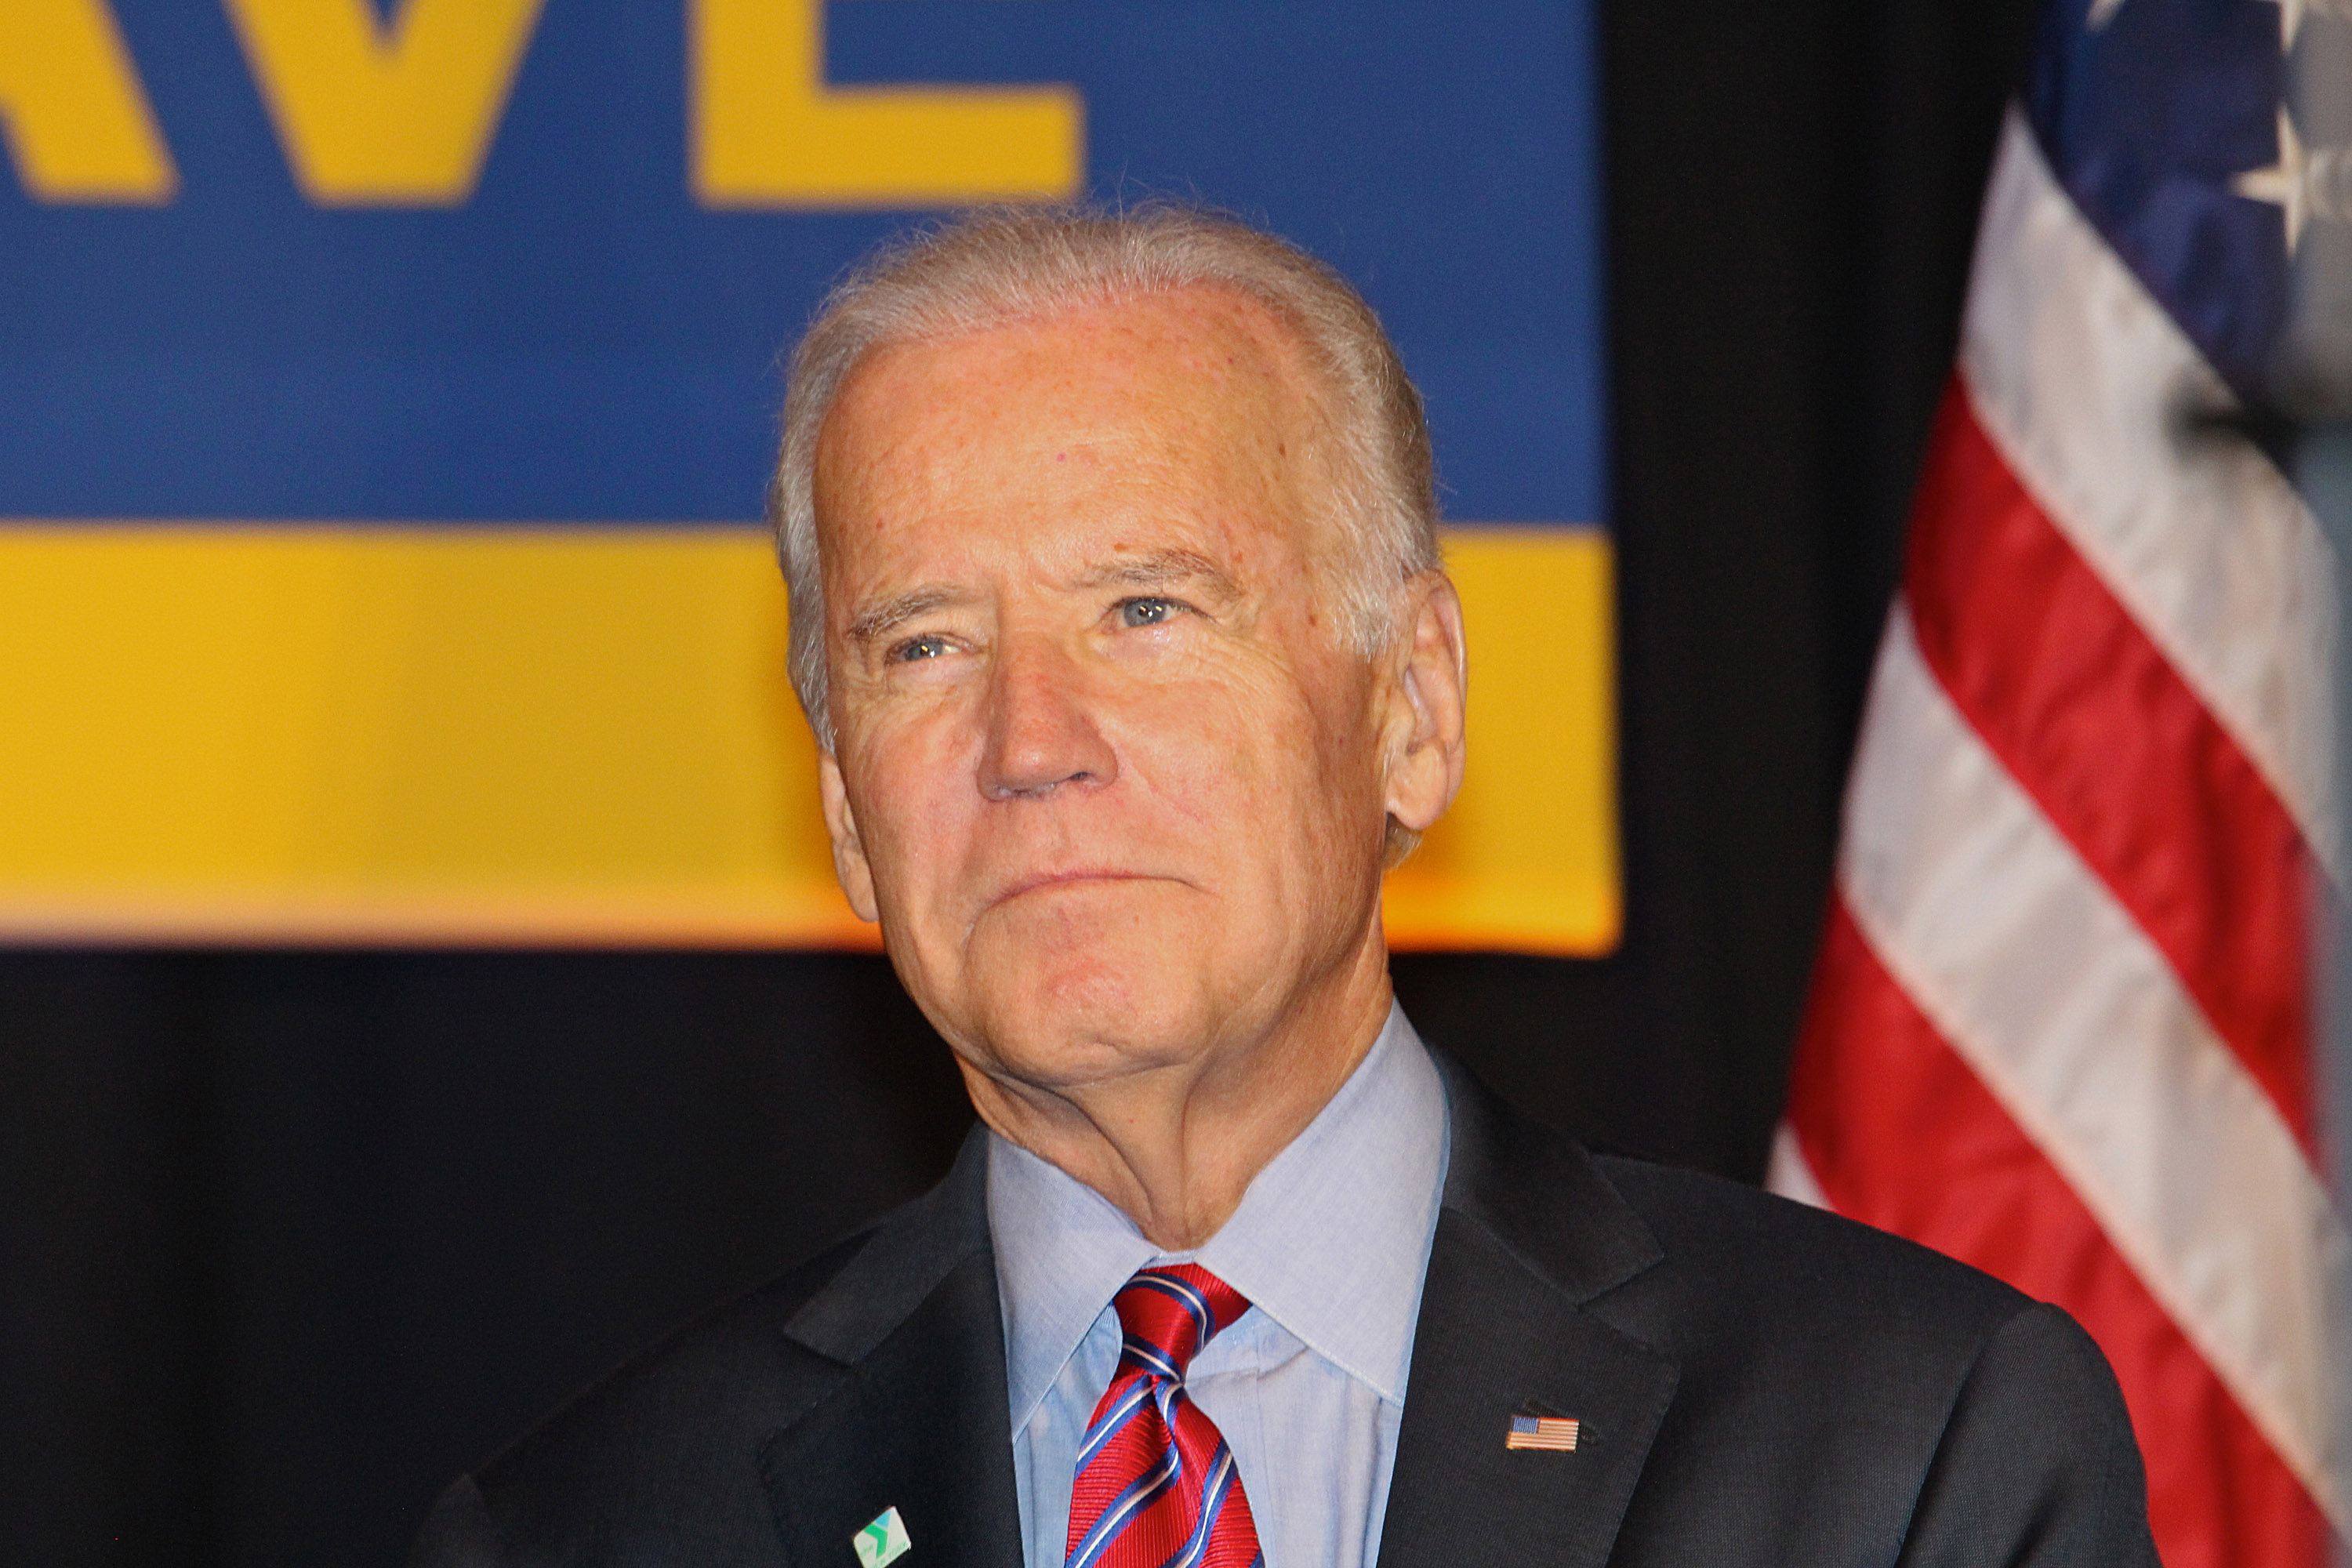 Vice President Biden And NY Governor Andrew Cuomo Deliver Remarks On Economy